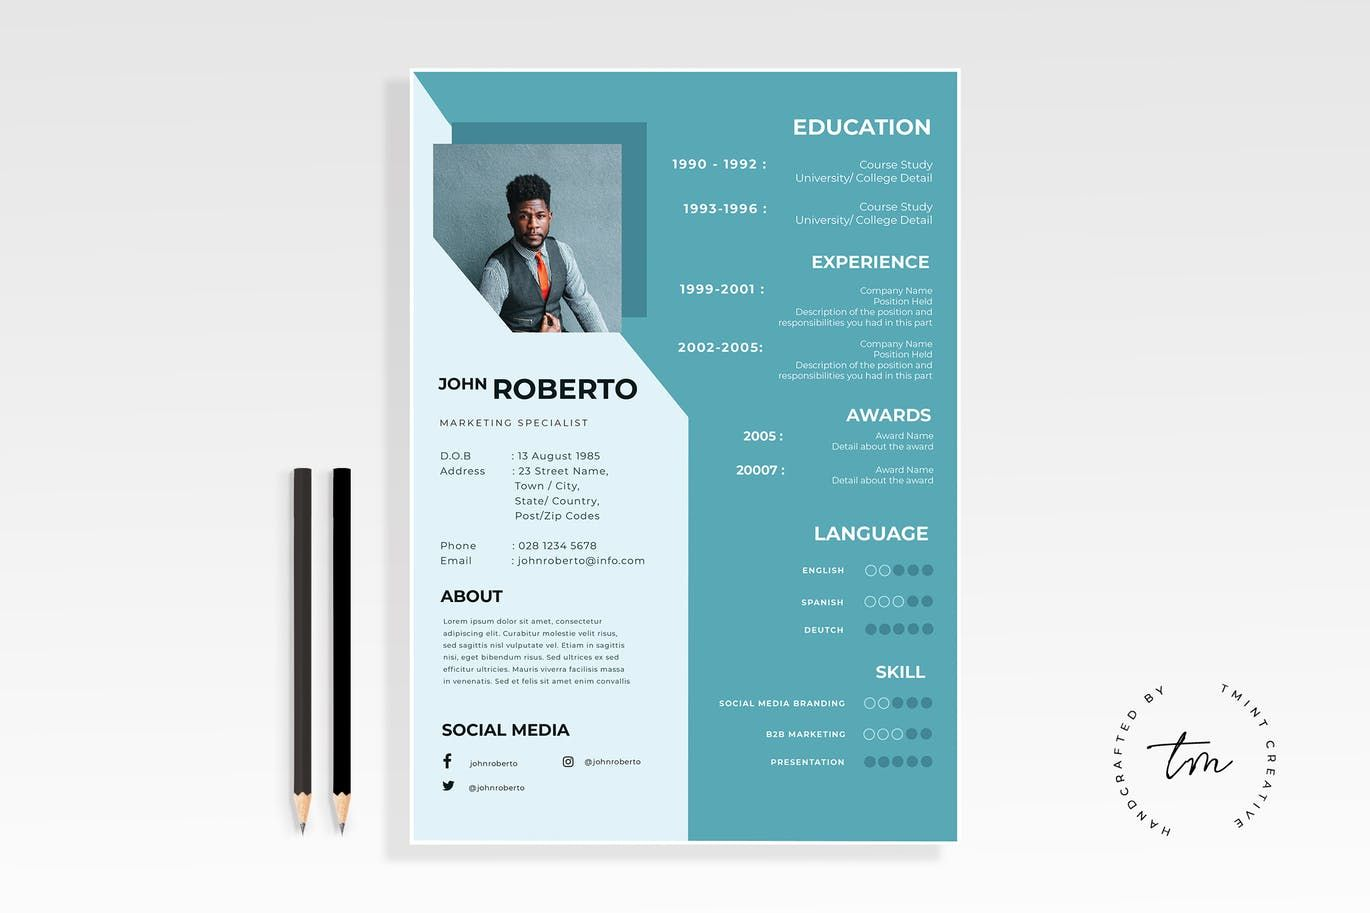 Resume Cv Template By Tmint On Envato Elements Resume Cv Cv Template Resume